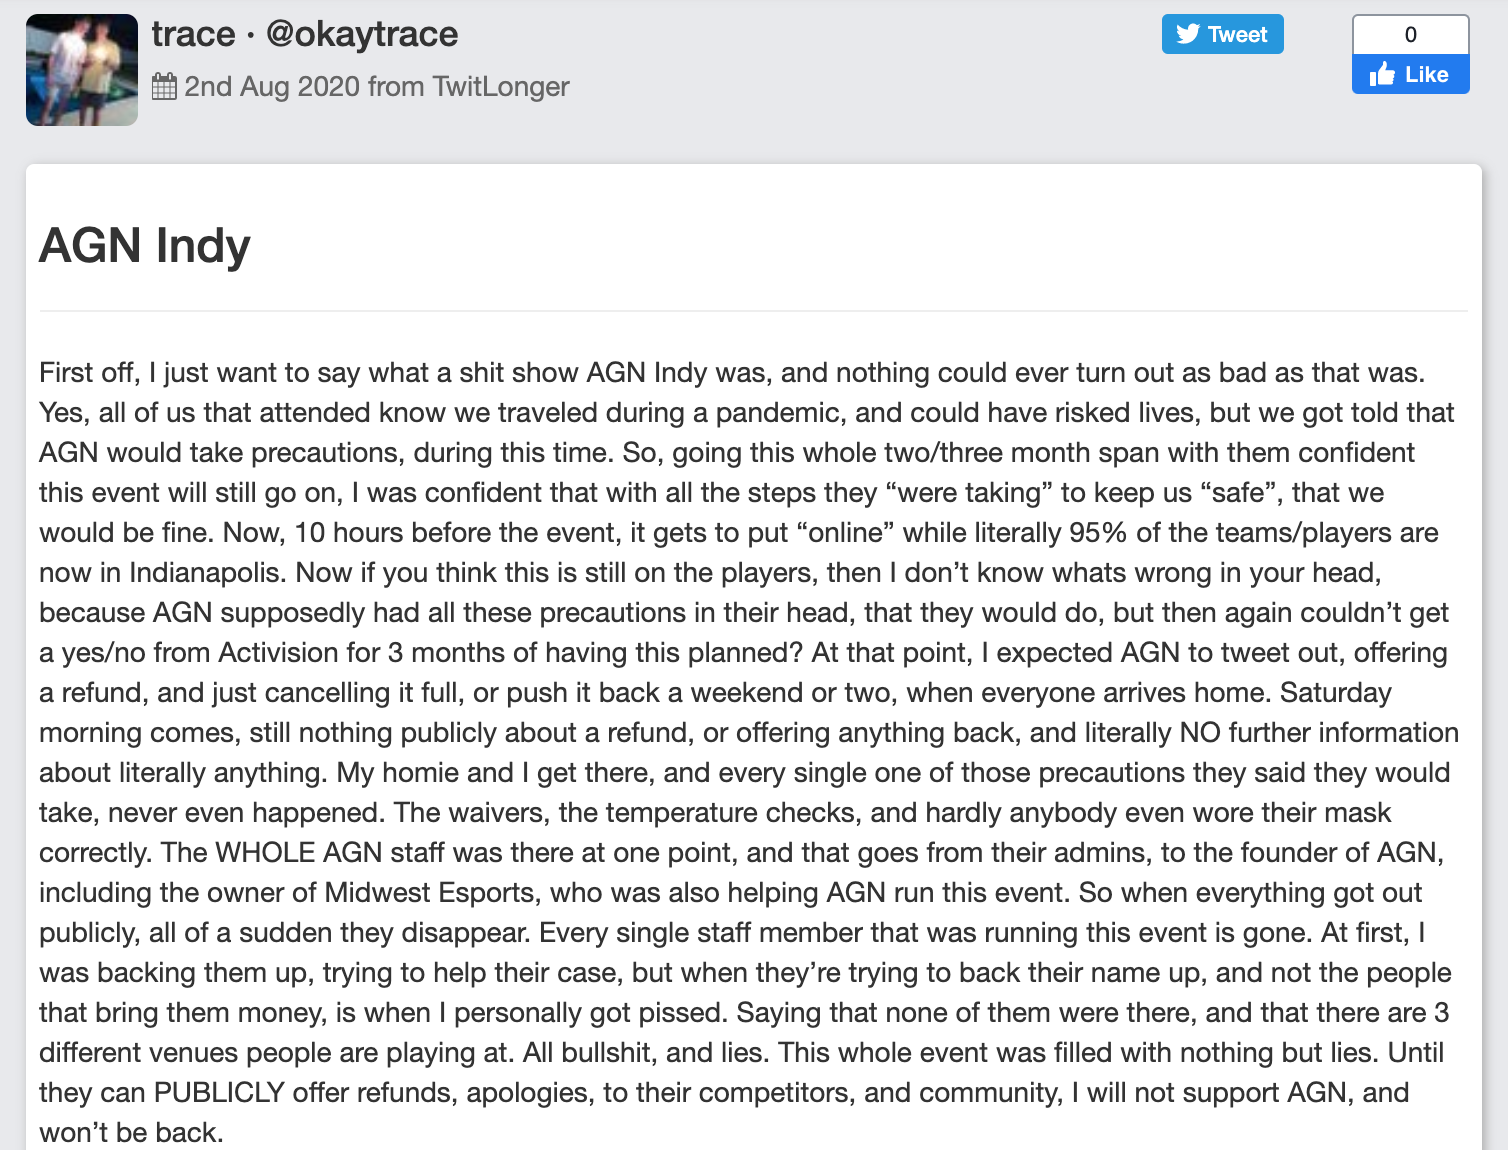 AGN Indy player Trace statement